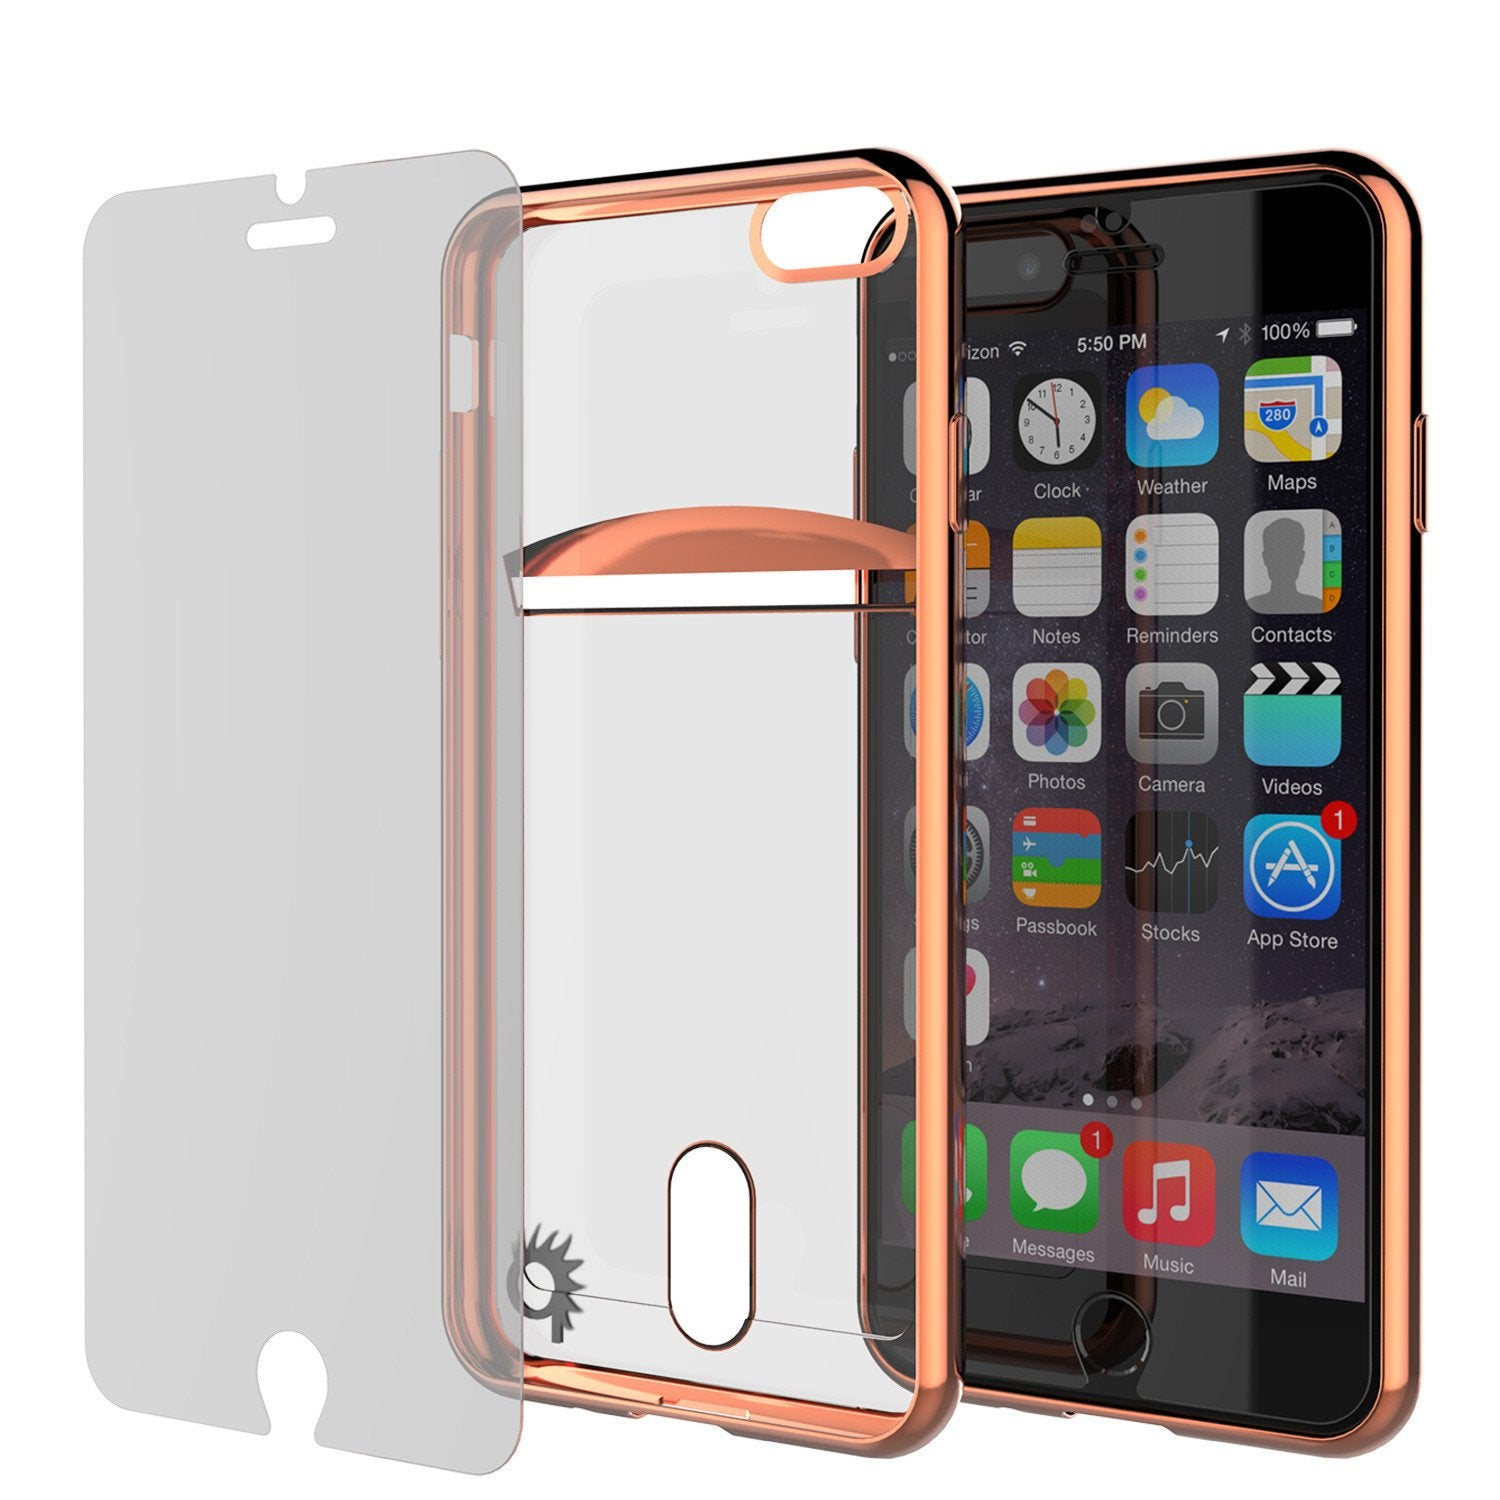 iPhone 7+ Plus Case, PUNKCASE® LUCID Rose Gold Series for iPhone 7+ Plus Premium Impact Protective Armor Case Cover | Clear TPU | Lifetime Warranty Exchange | PUNK SHIELD Screen Protector | Ultra Fit